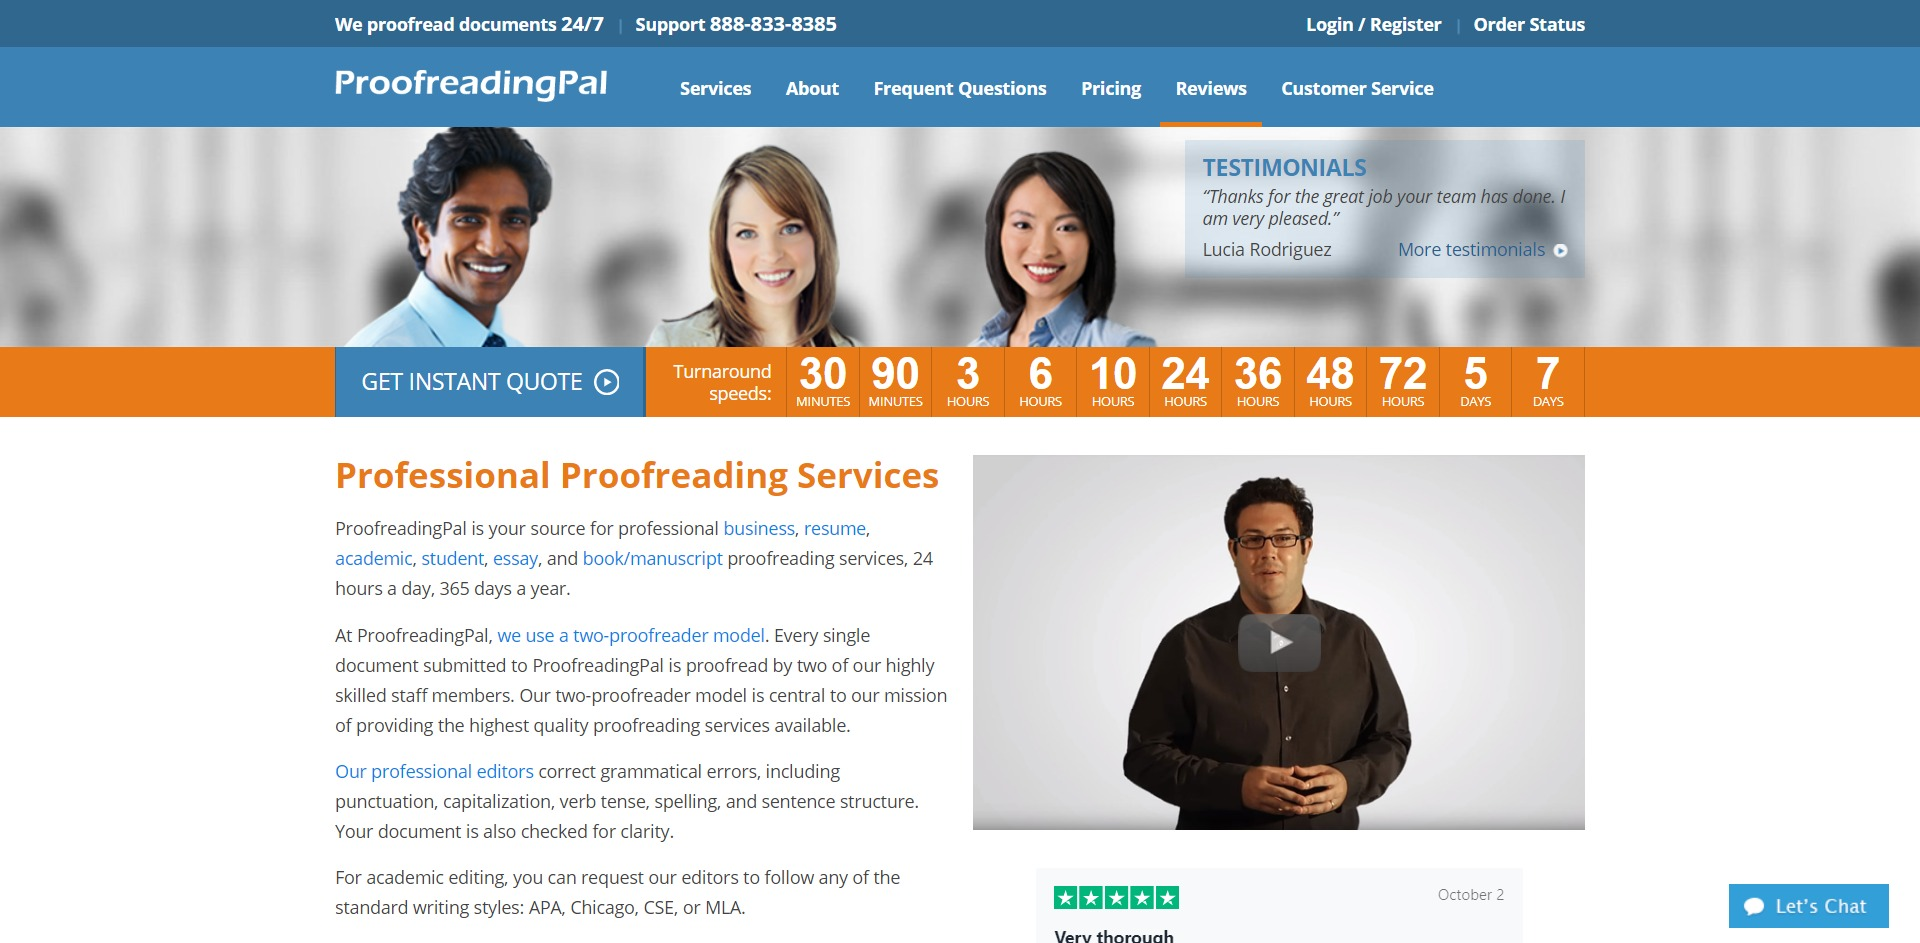 proofreadingpal